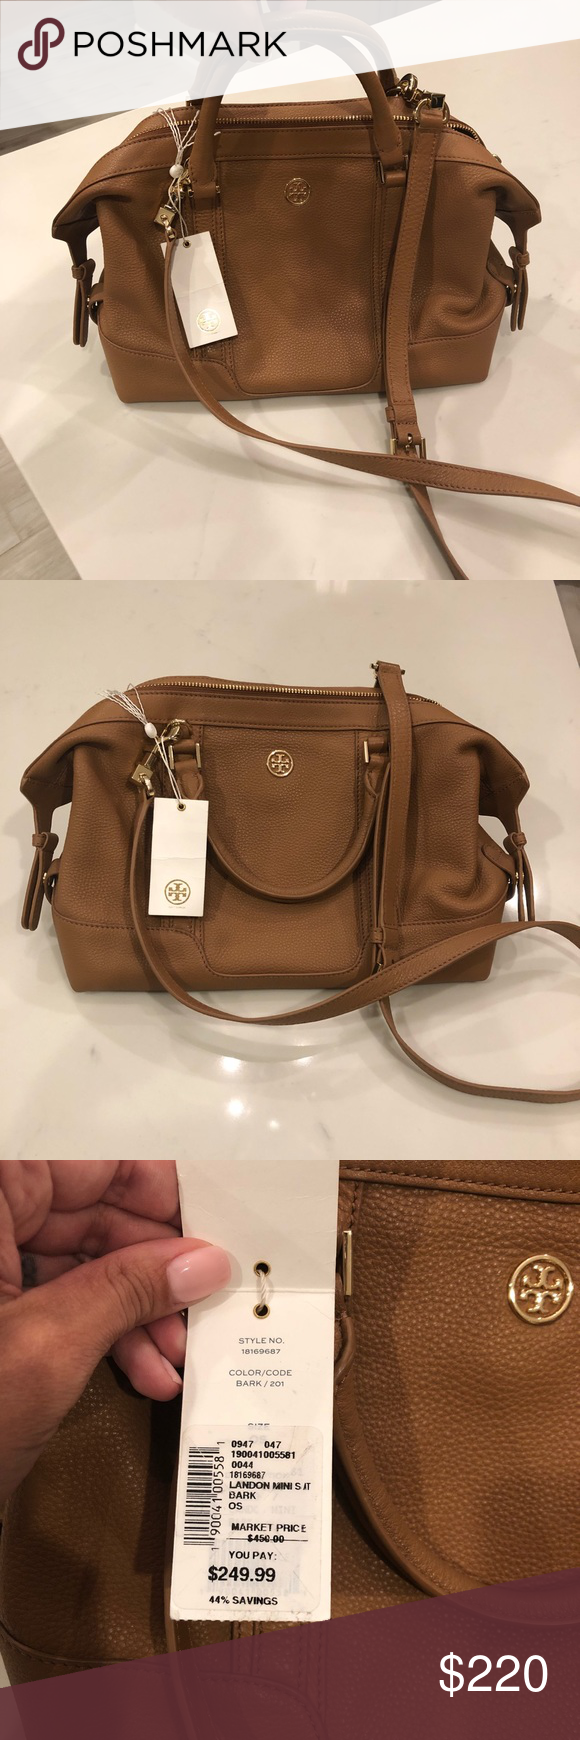 84505a77209b Tory Burch Landon mini satchel Brand new beautiful Tory Burch Landon mini  satchel. This bag is the perfect size...not too big or small.